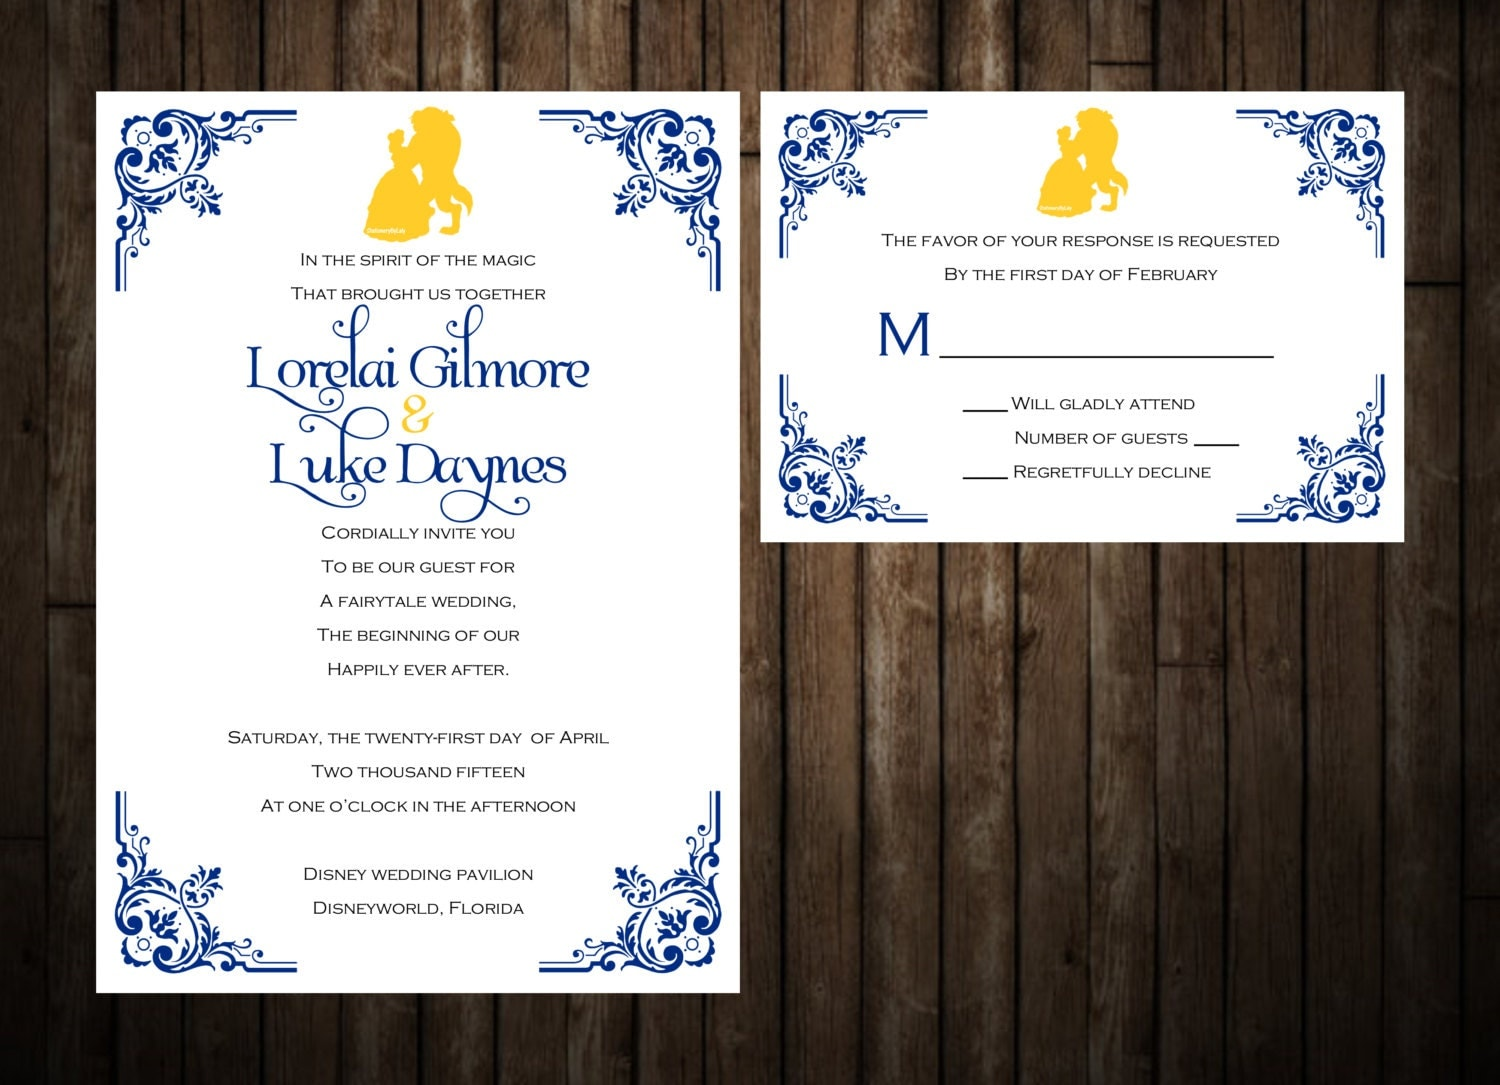 Beauty And The Beast Themed Wedding Invitations: Beauty And The Beast Wedding Invitations By StationeryByLaly